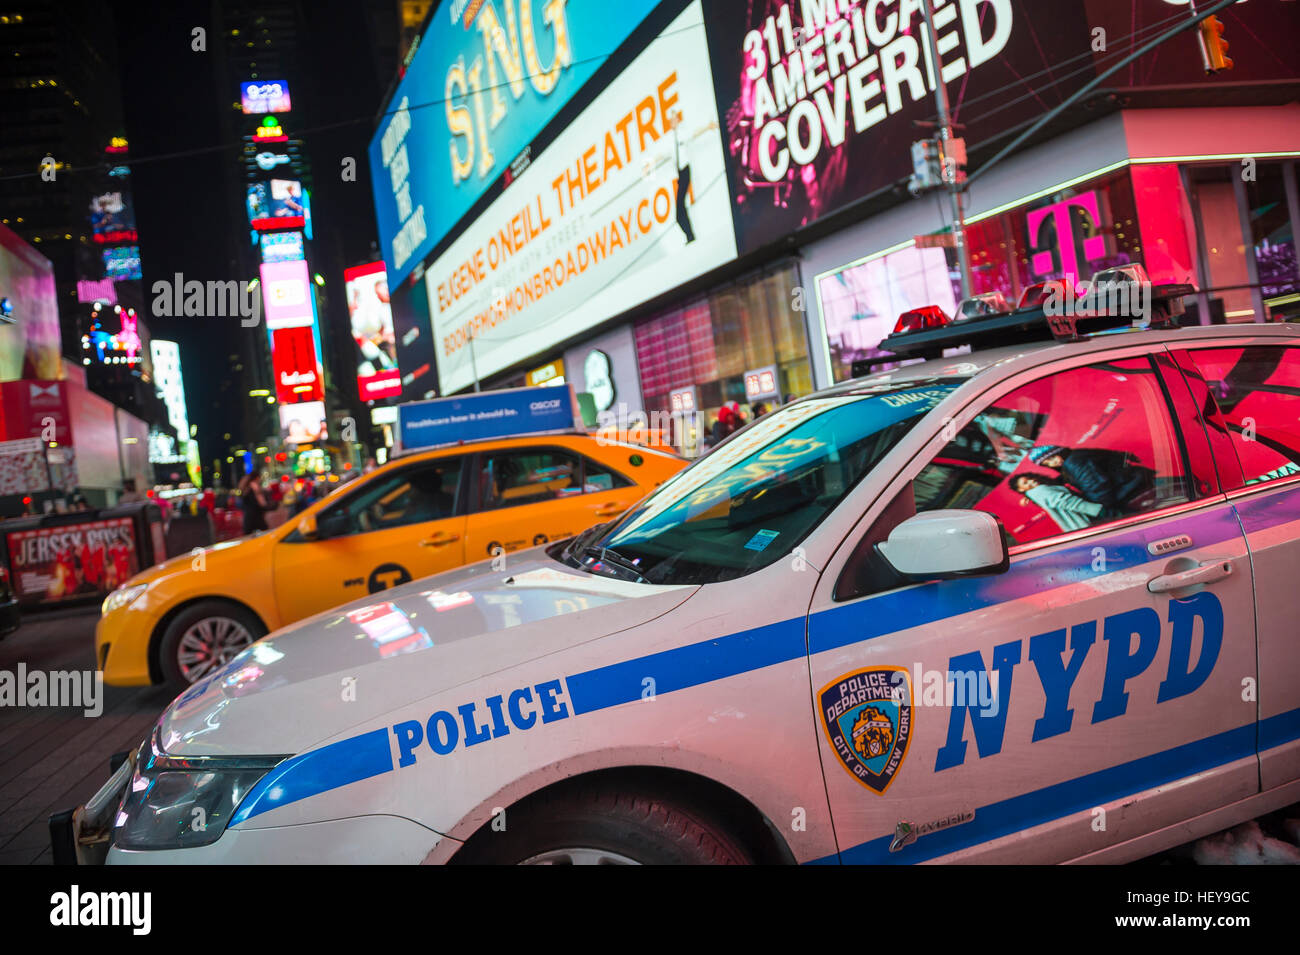 NEW YORK CITY - DECEMBER 23, 2016: NYPD police car stationed in Times Square as the city prepares for New Year's - Stock Image